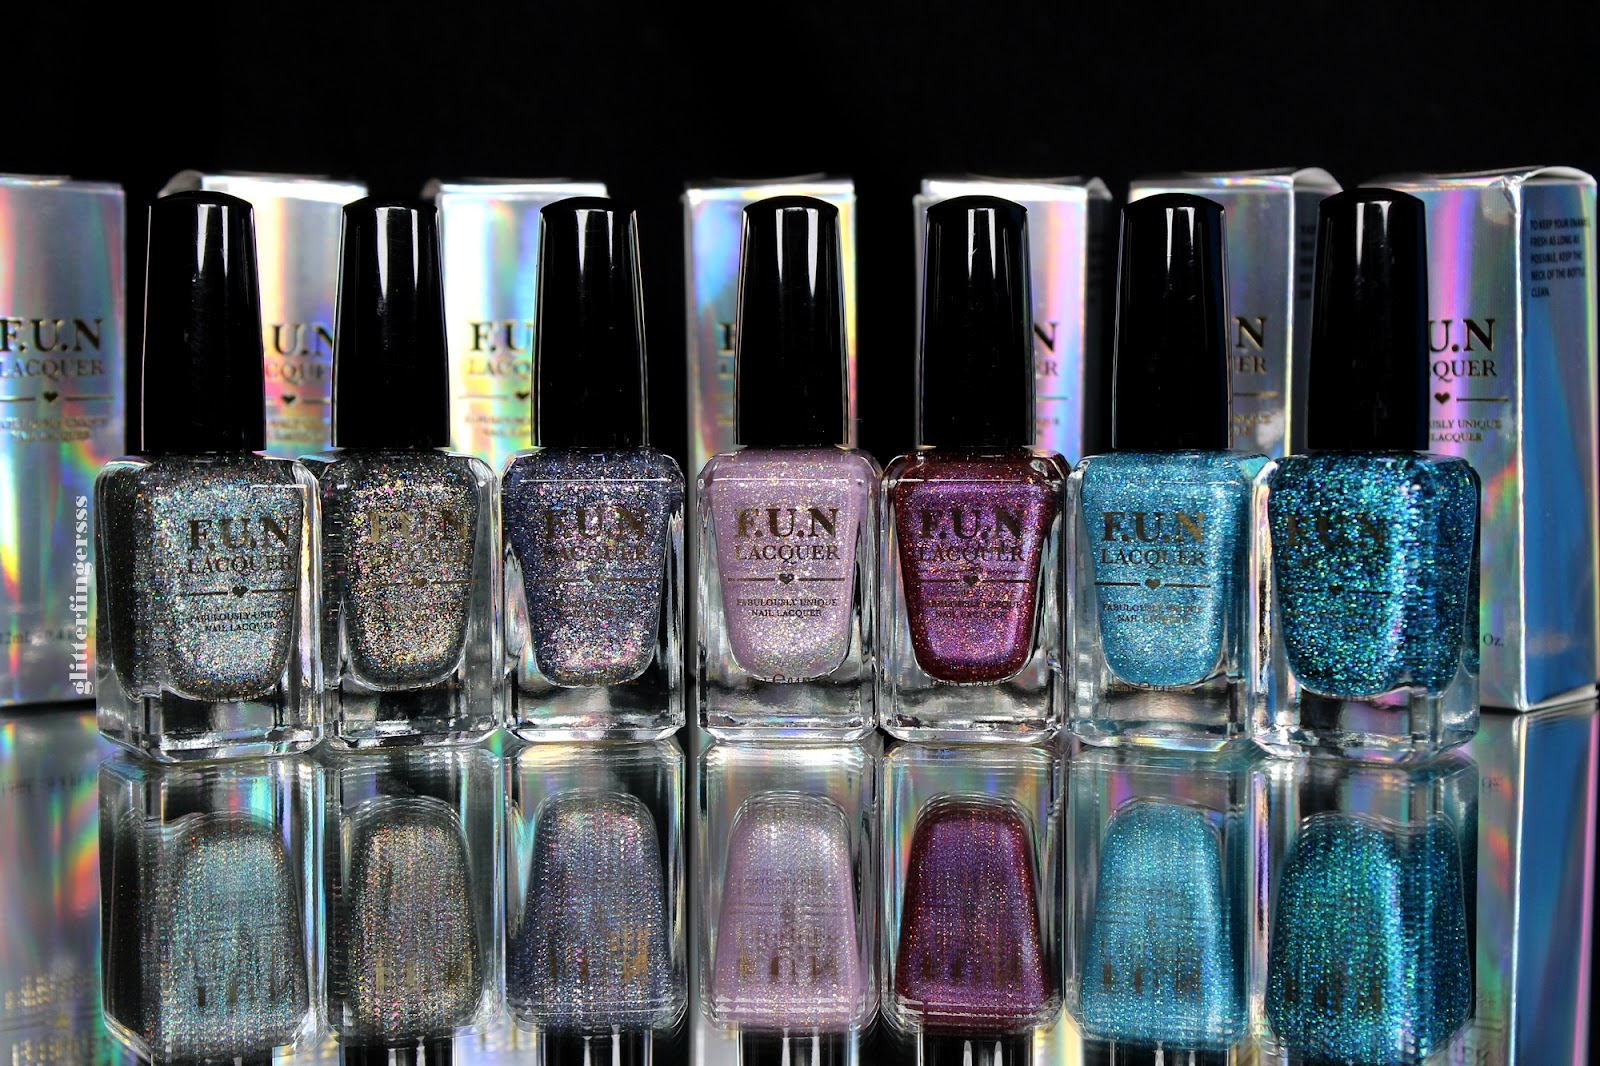 F.U.N. Lacquer 2015 Limited Edition Collection ~ Glitterfingersss in ...